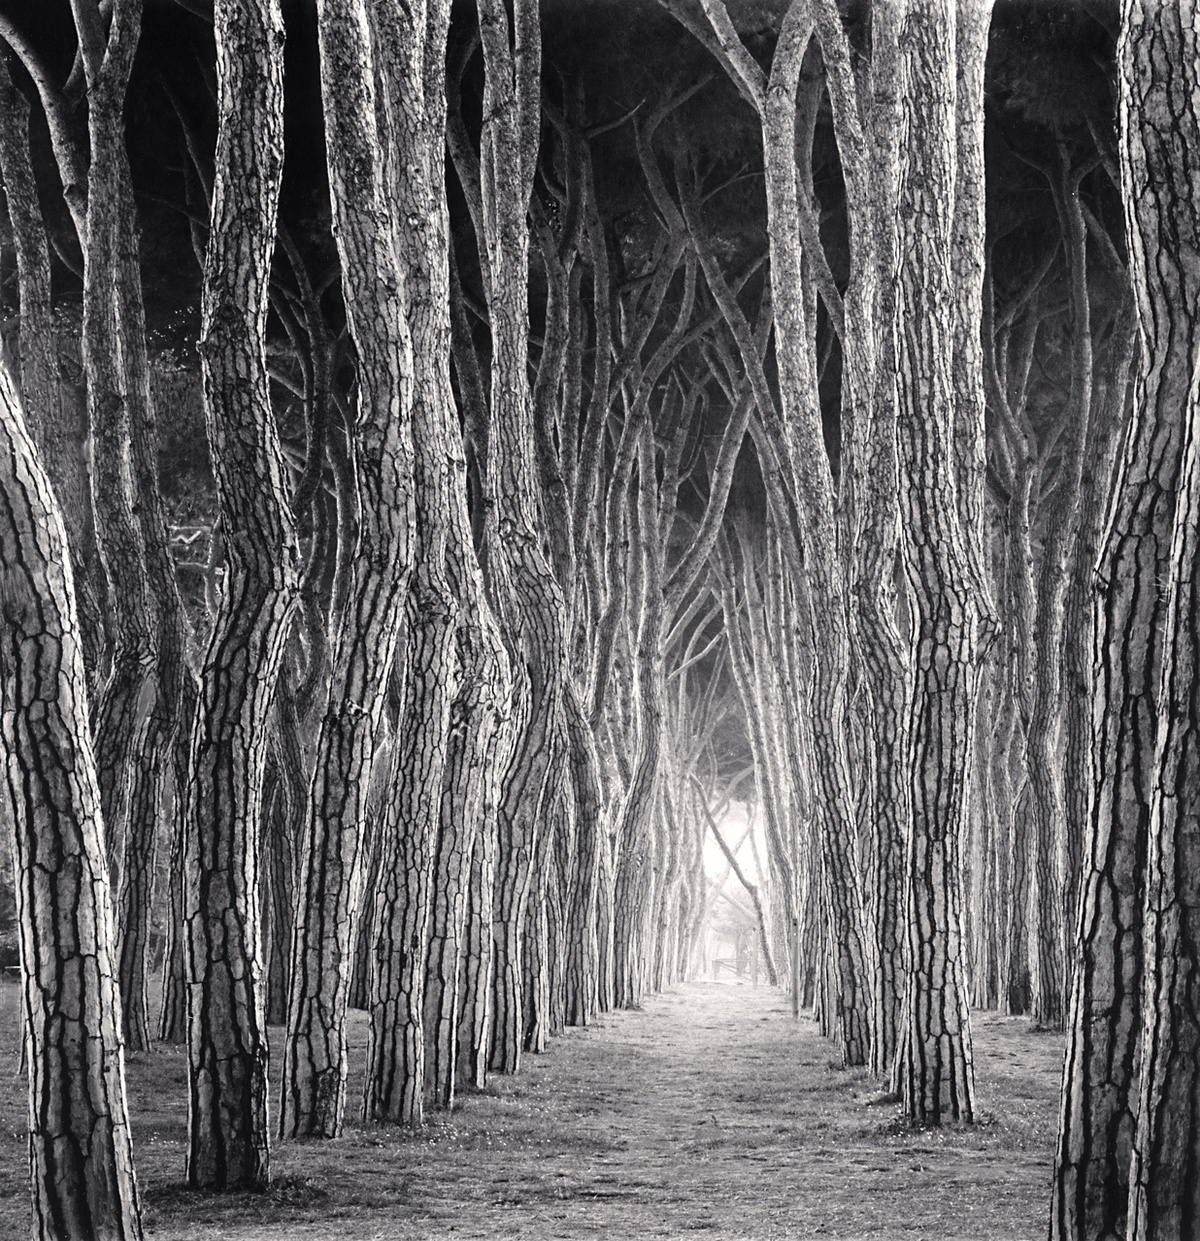 Michael Kenna Stone Pine Tunnel, Pineto, Abruzzo, Italy 2016 Sepia Toned Silver Gelatin Print From An Edition Of 25 8 x 8 Inches